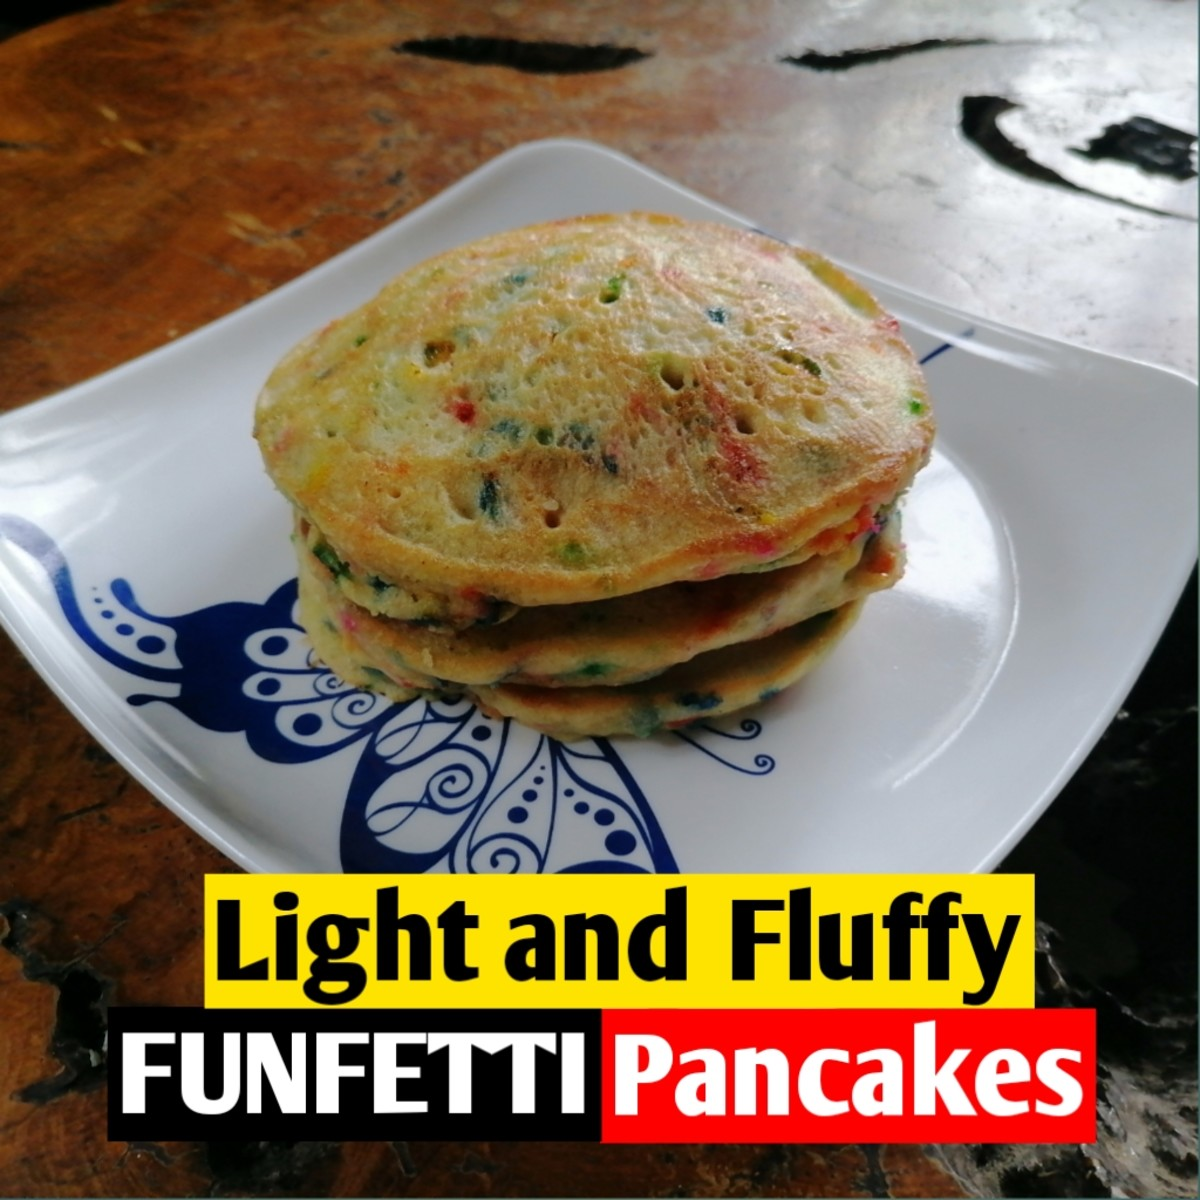 These funfetti pancakes are perfect for birthdays!